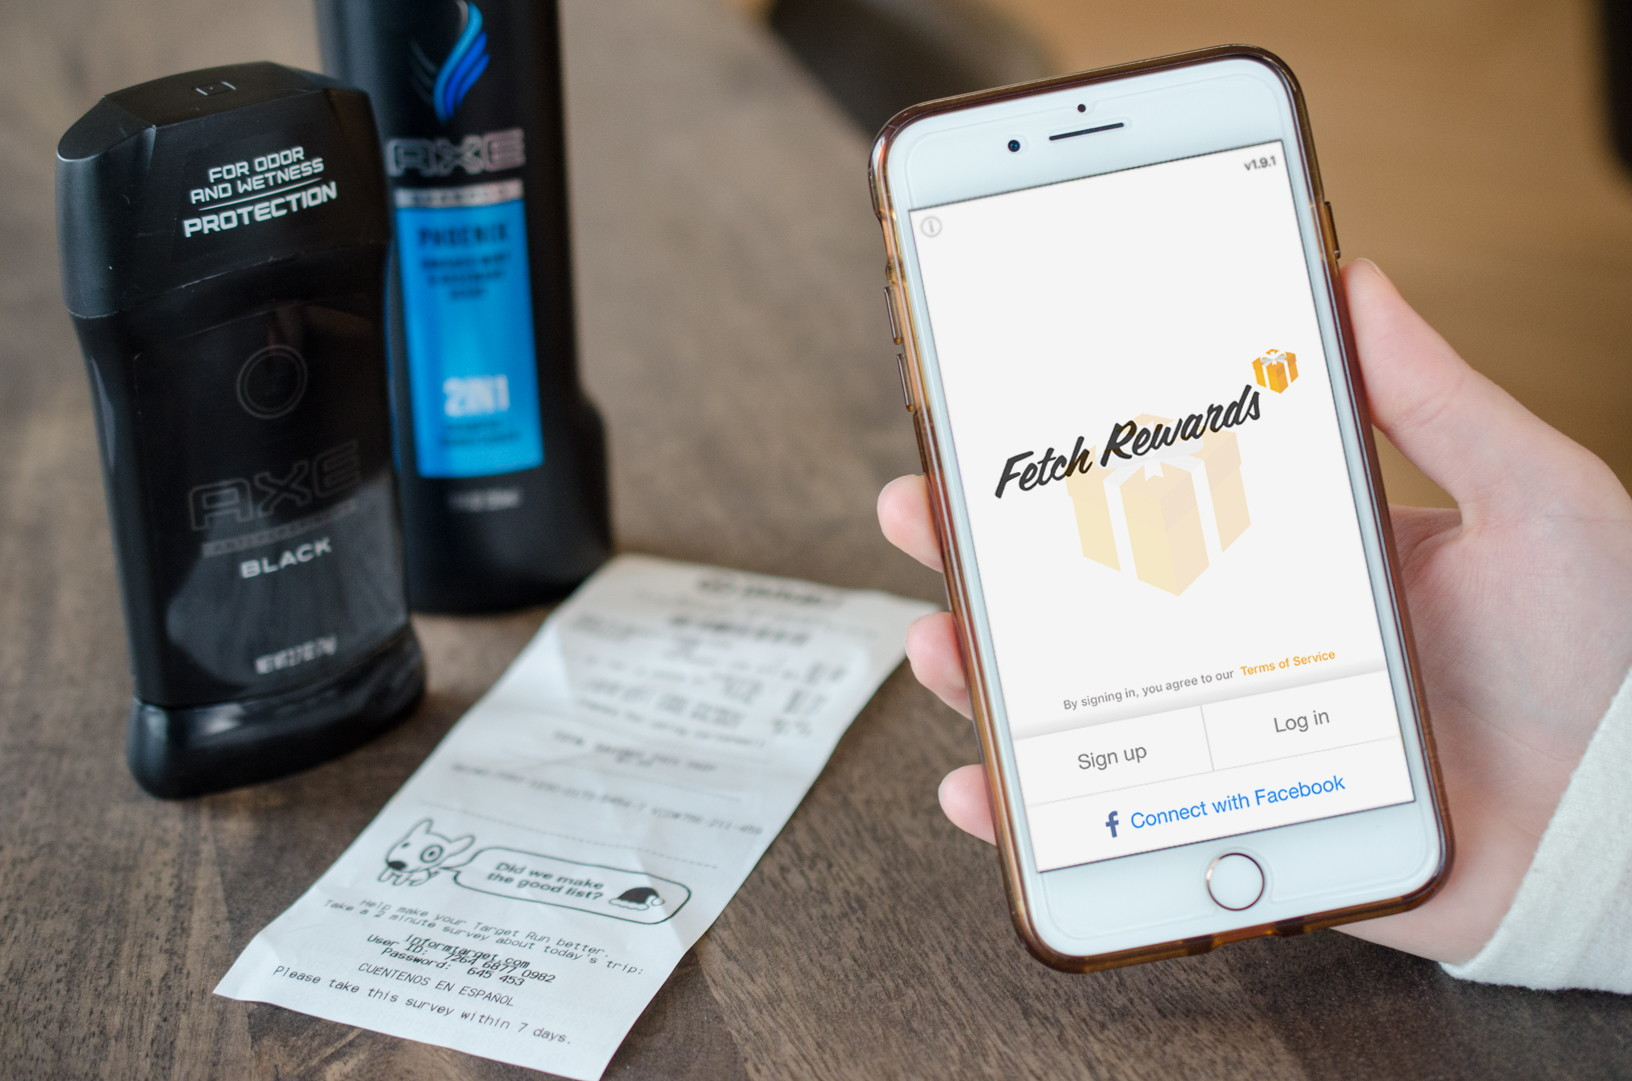 Everything You Need to Know About the New Fetch Rewards App